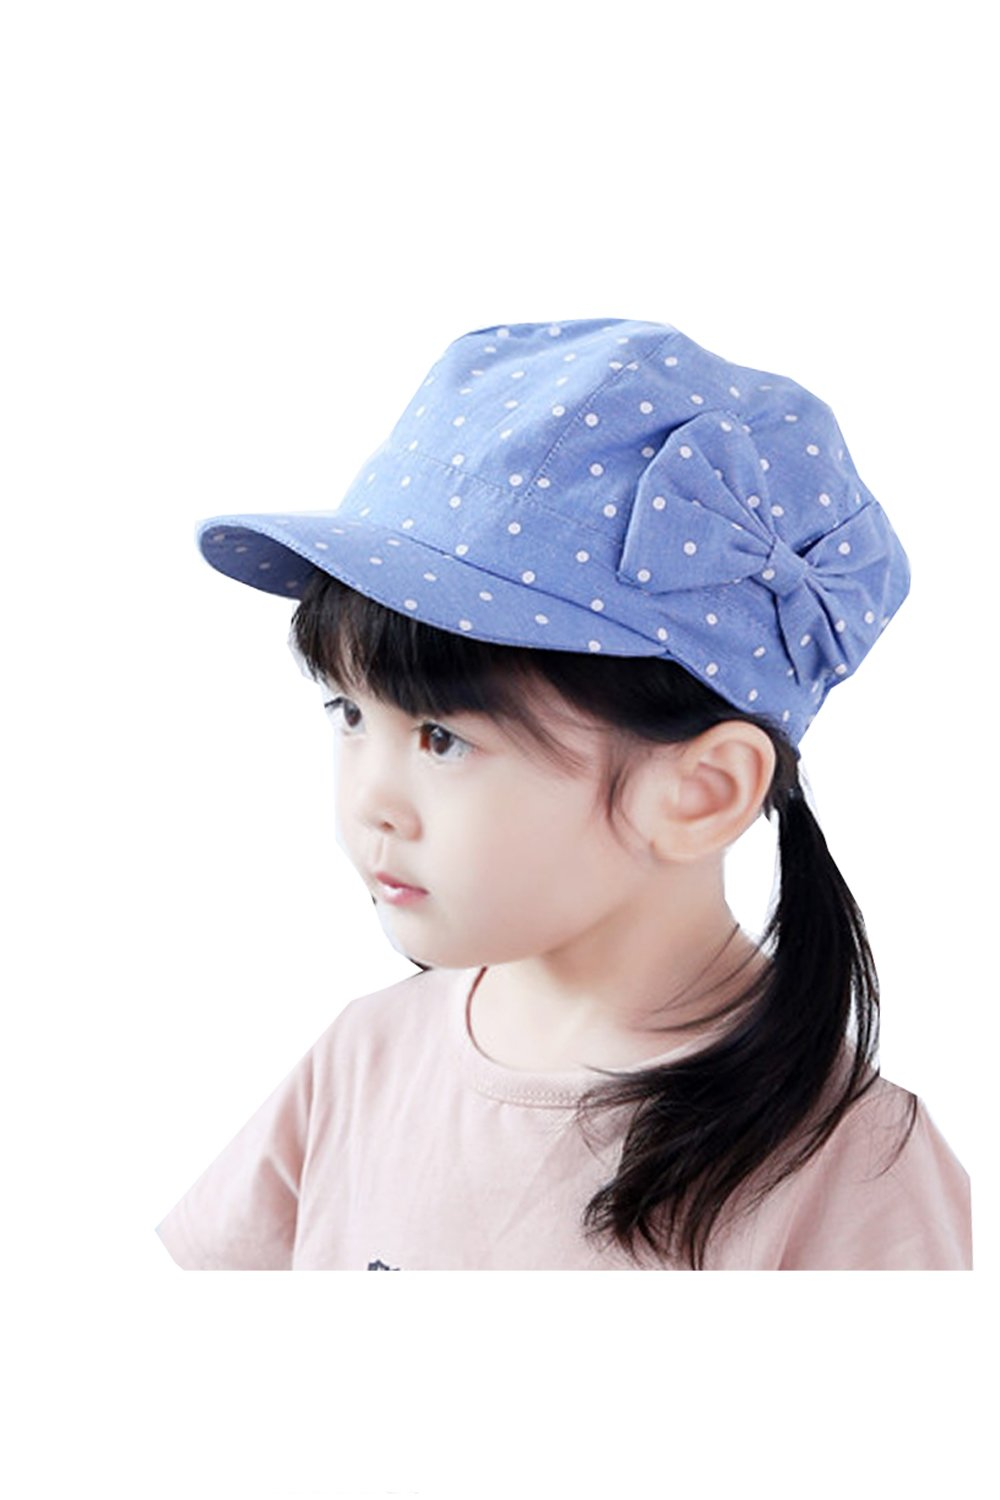 BonjourMrsMr Toddler Baby Girl's Cute Bowknot Polka Dot Cotton Beret Cap Hat(6m-4T)